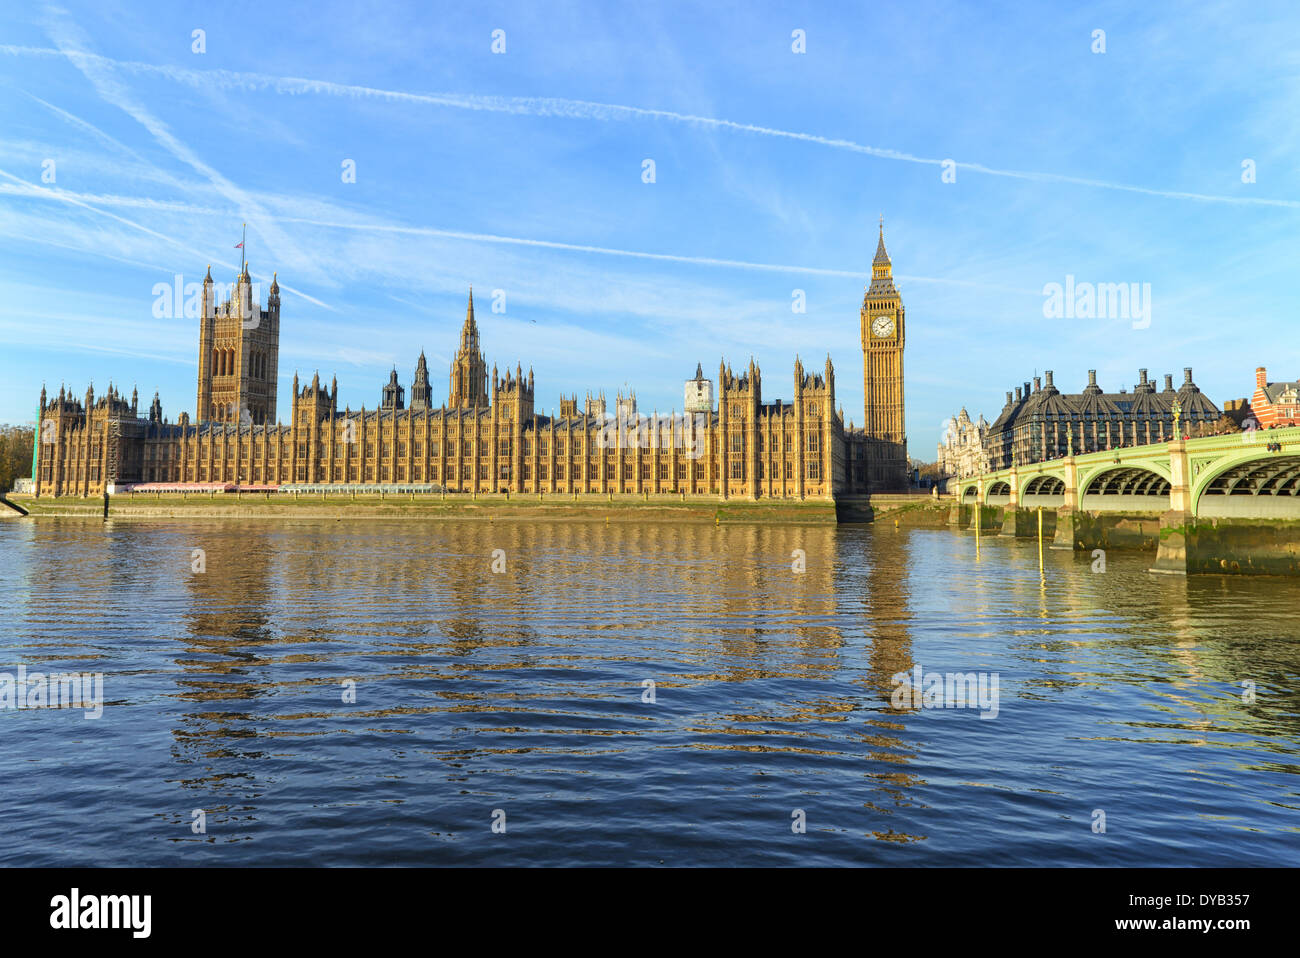 The Palace of Westminster in London, UK - Stock Image